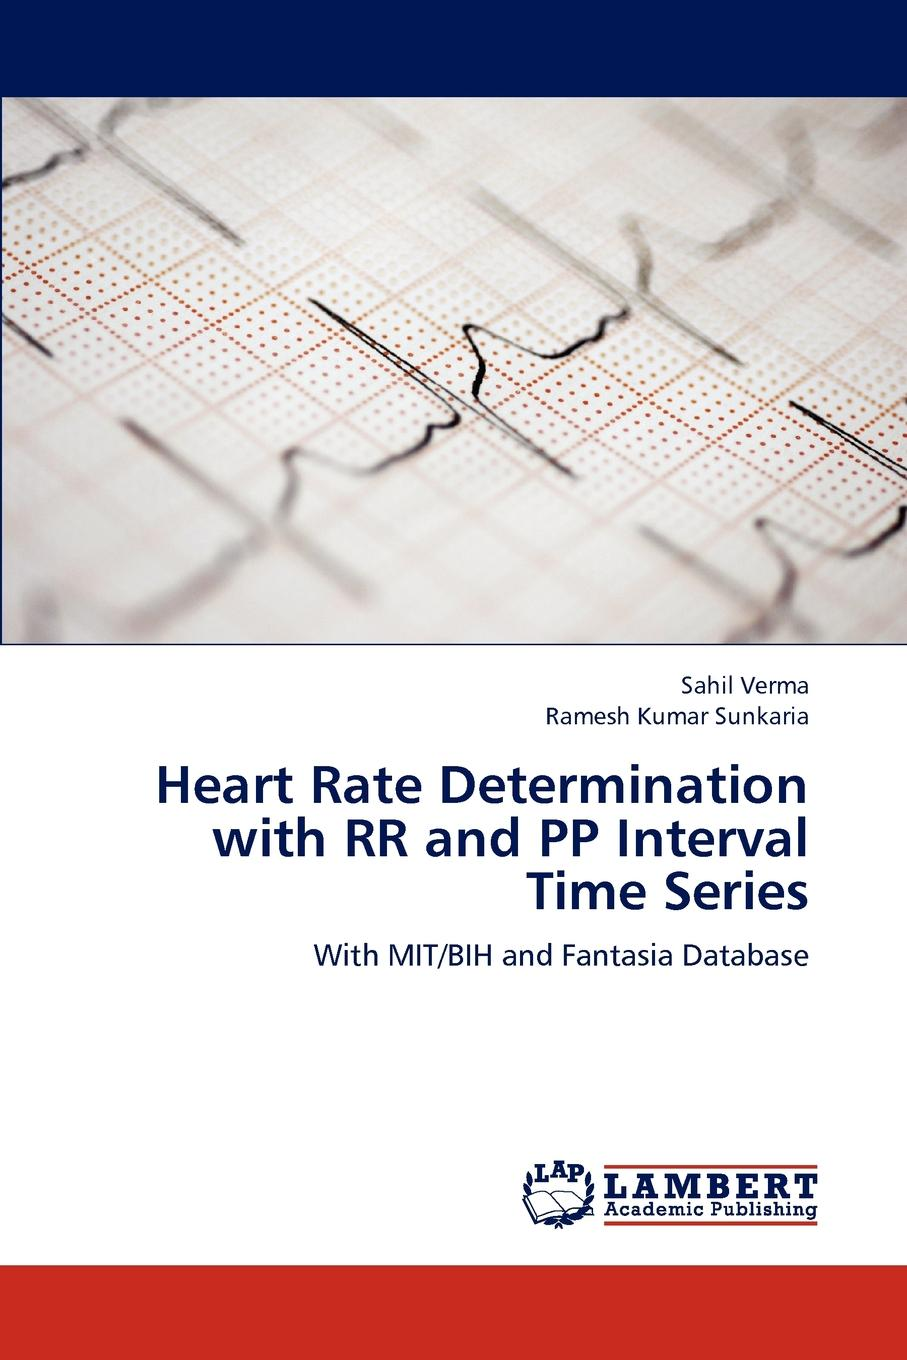 Verma Sahil, Sunkaria Ramesh Kumar Heart Rate Determination with RR and Pp Interval Time Series